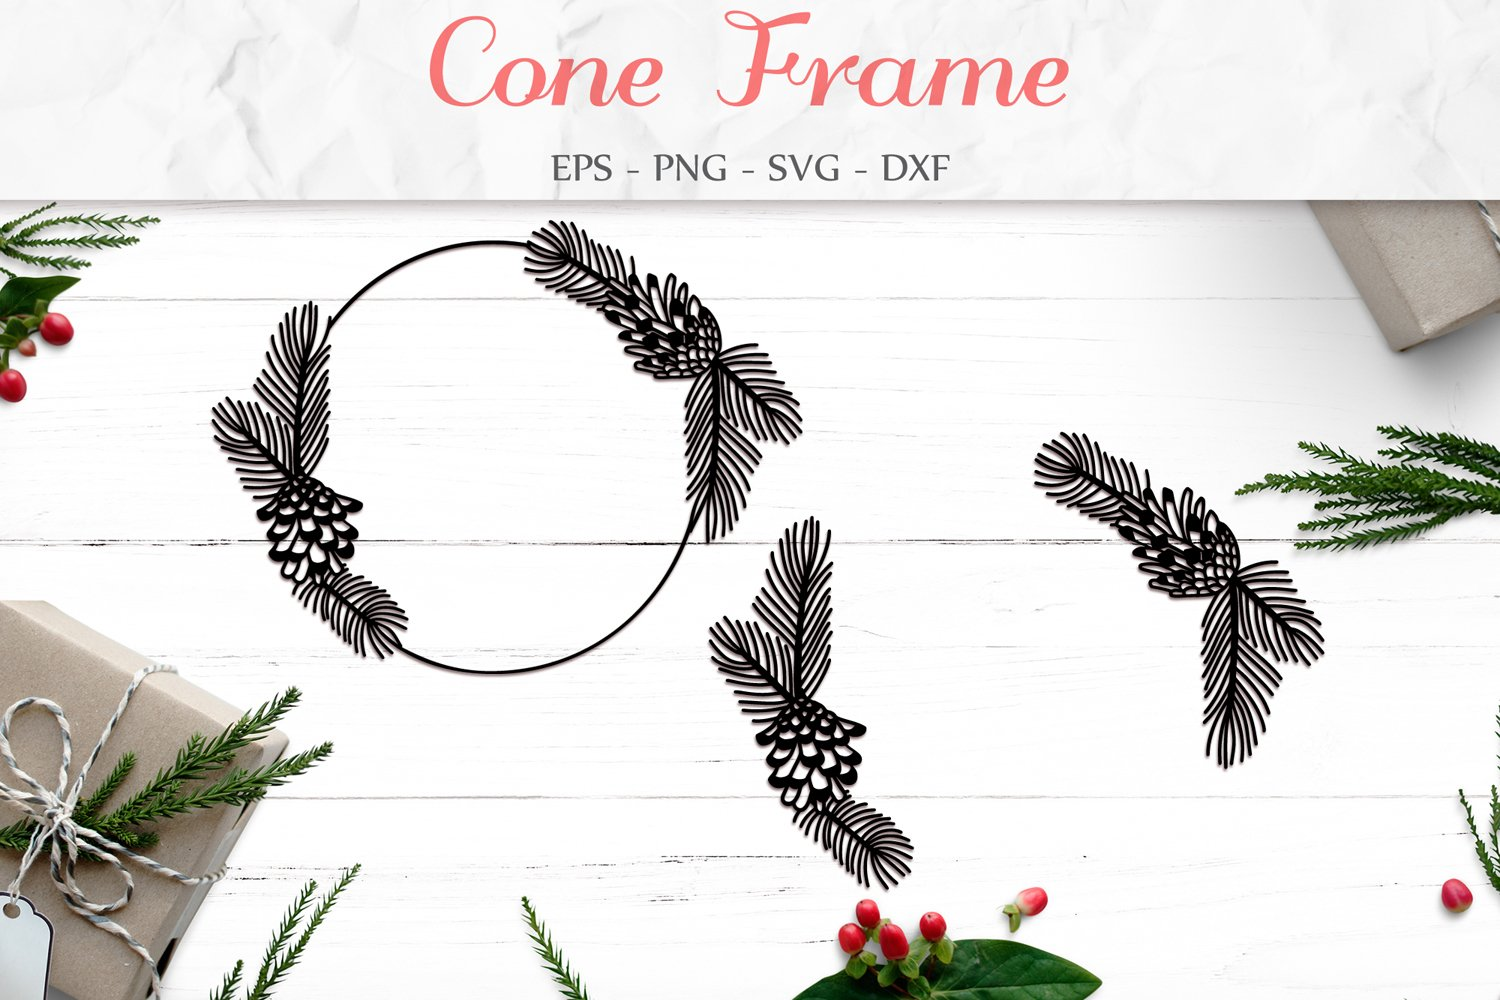 Garland clipart pine cone, Garland pine cone Transparent FREE for download  on WebStockReview 2020